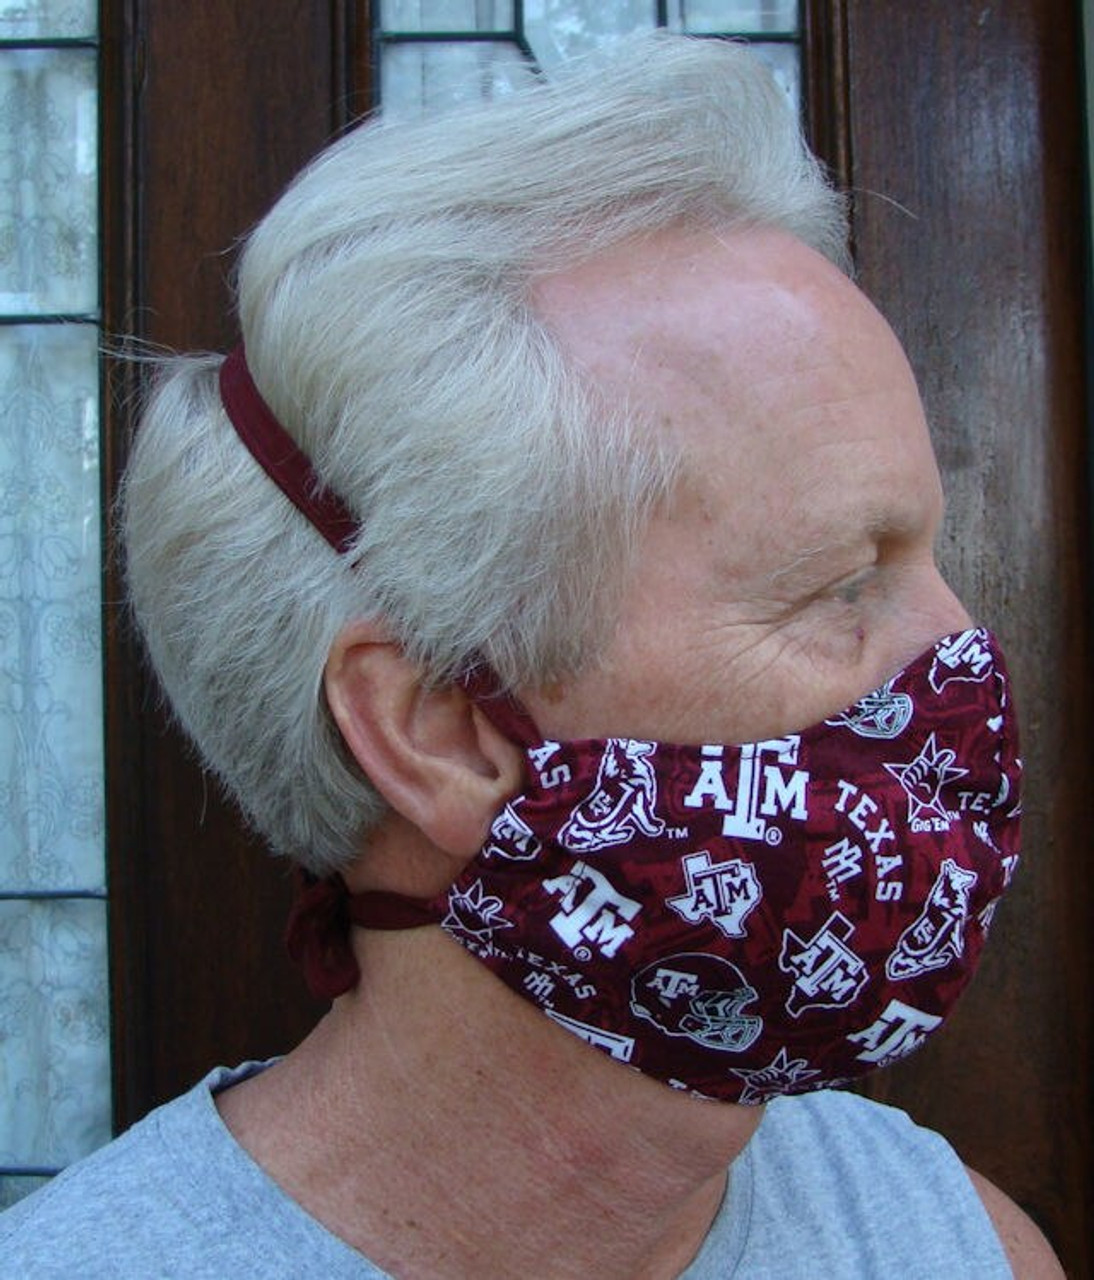 Texas A&M Face Mask in A&M Gig Em Maroon Tone on Tone